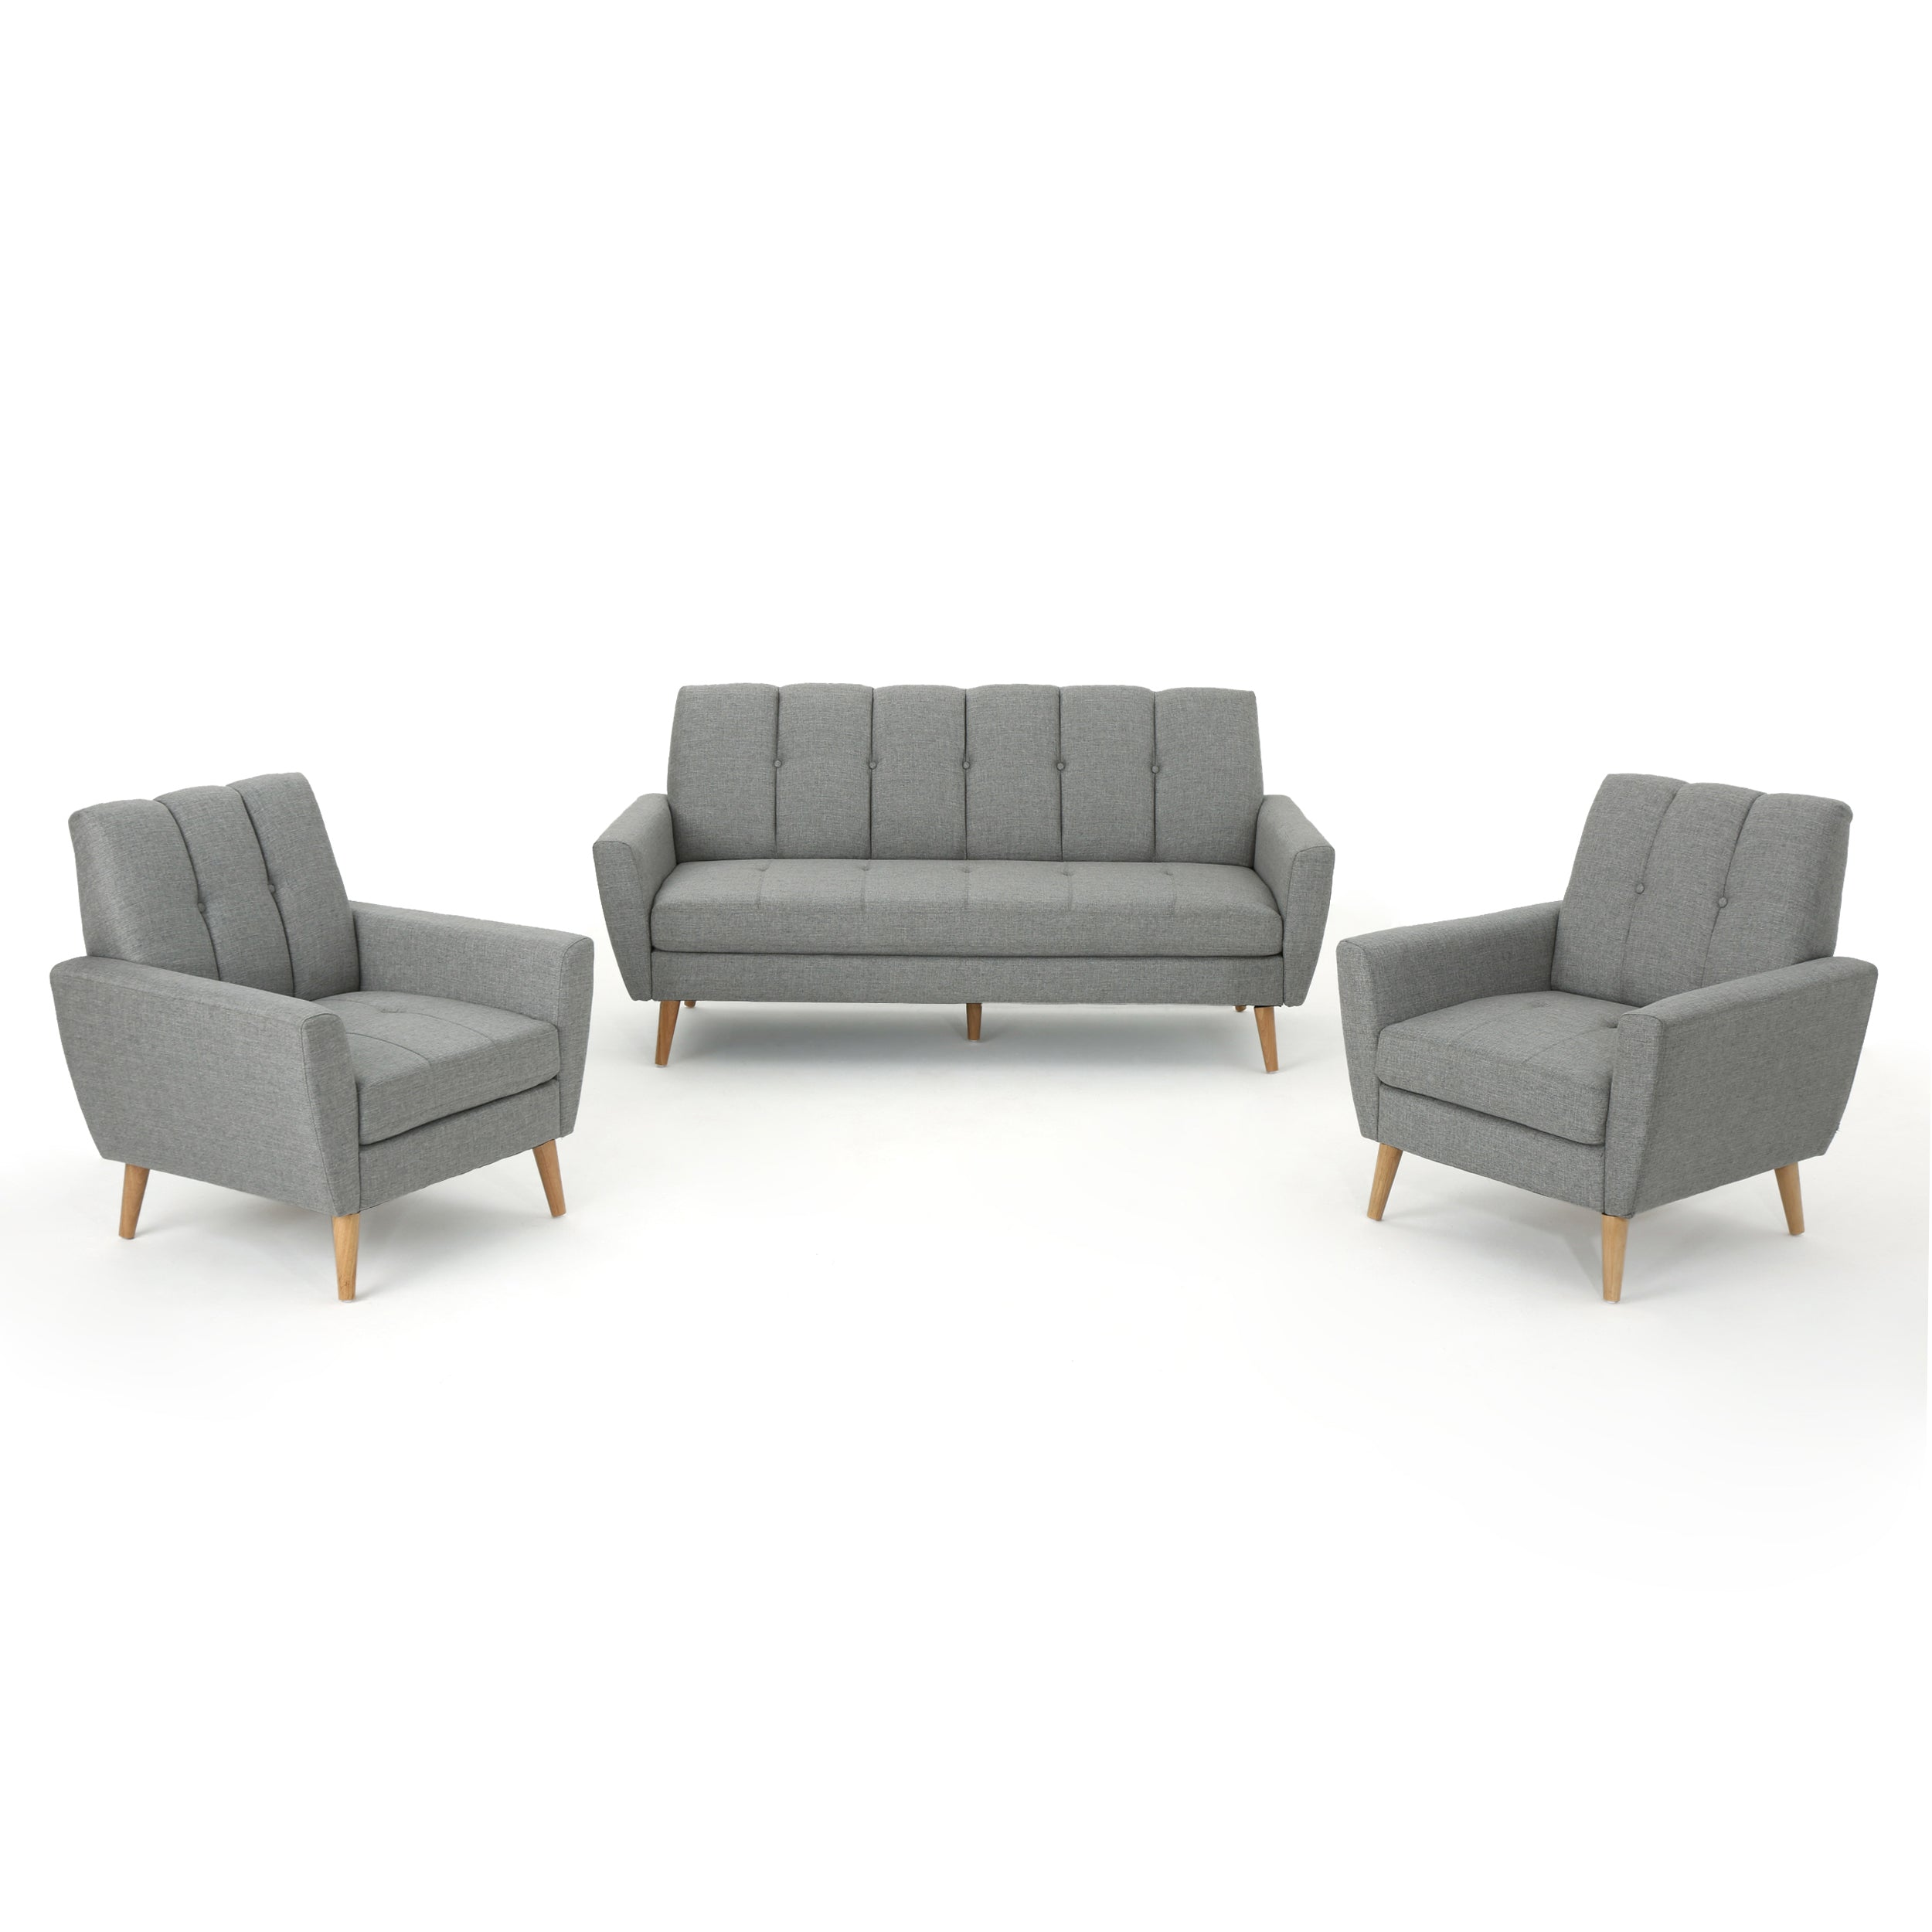 Angelica Mid Century Modern 3 Piece Chairs Couch Fabric Living Room Set Gray